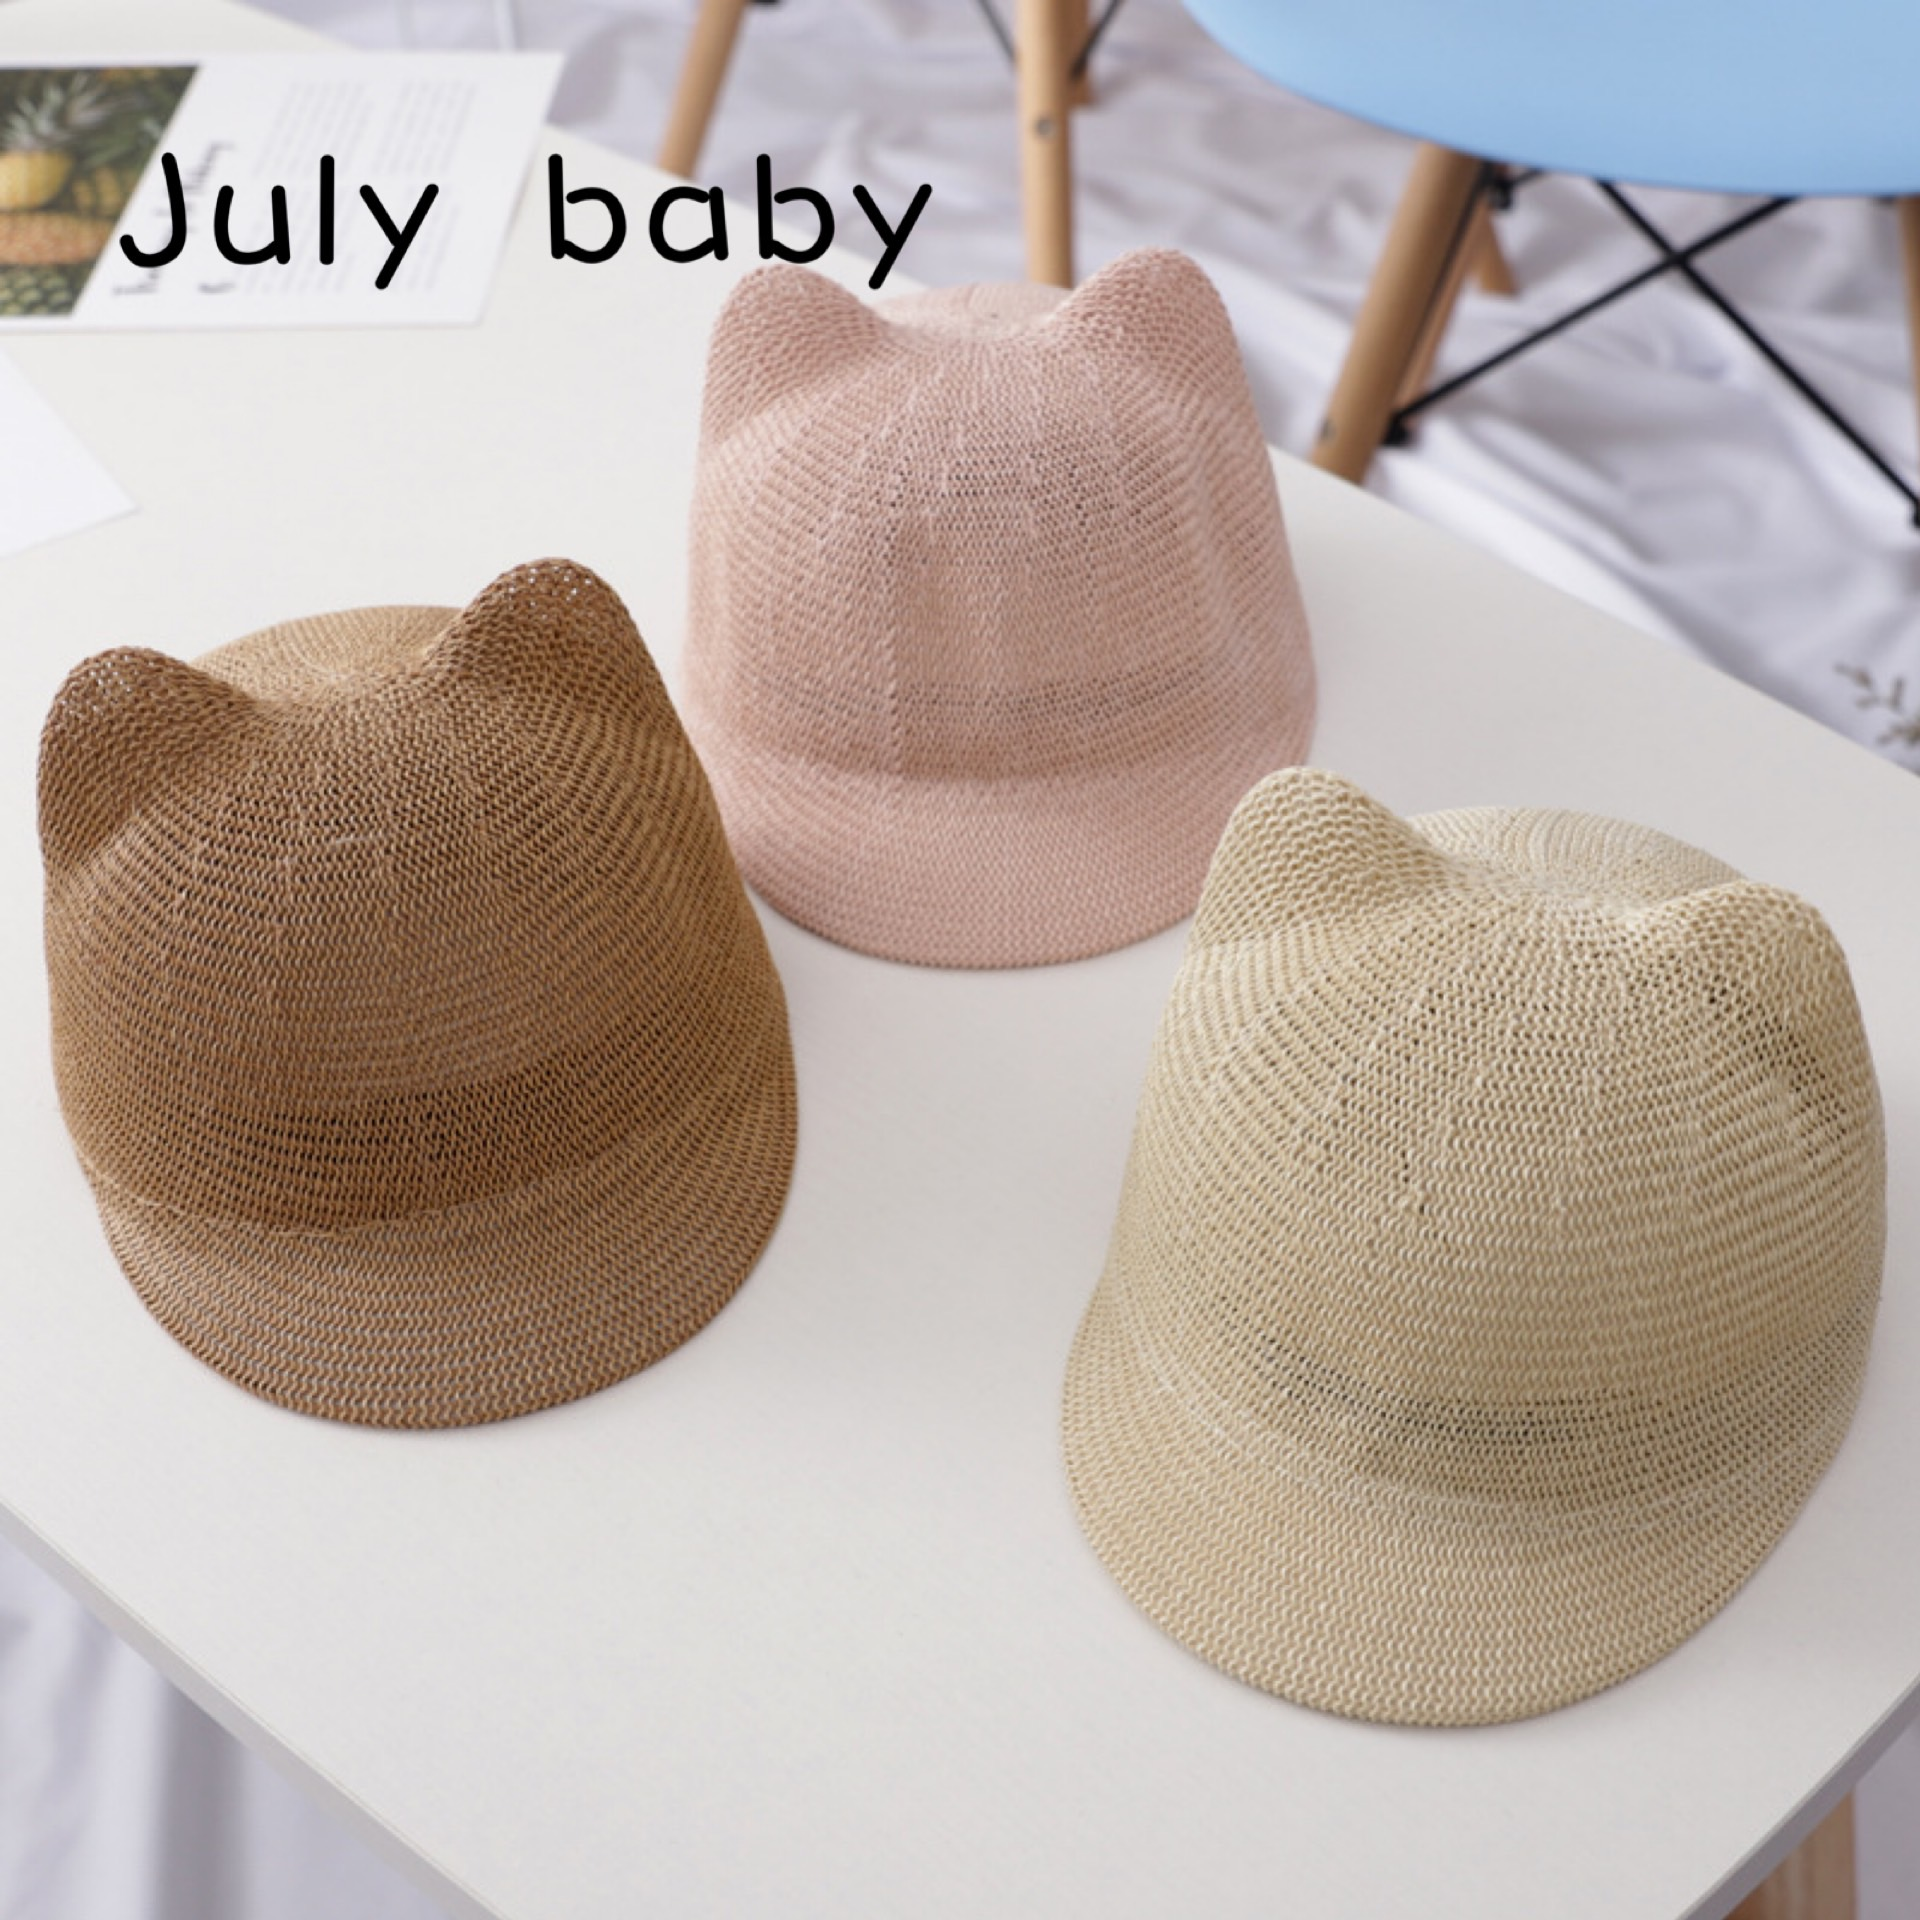 July Baby Children's Hat Male Korean Version Summer Baby Cap Girl Sunscreen Hat Travel Sunscreen Sunscreen Hat Breathable Straw